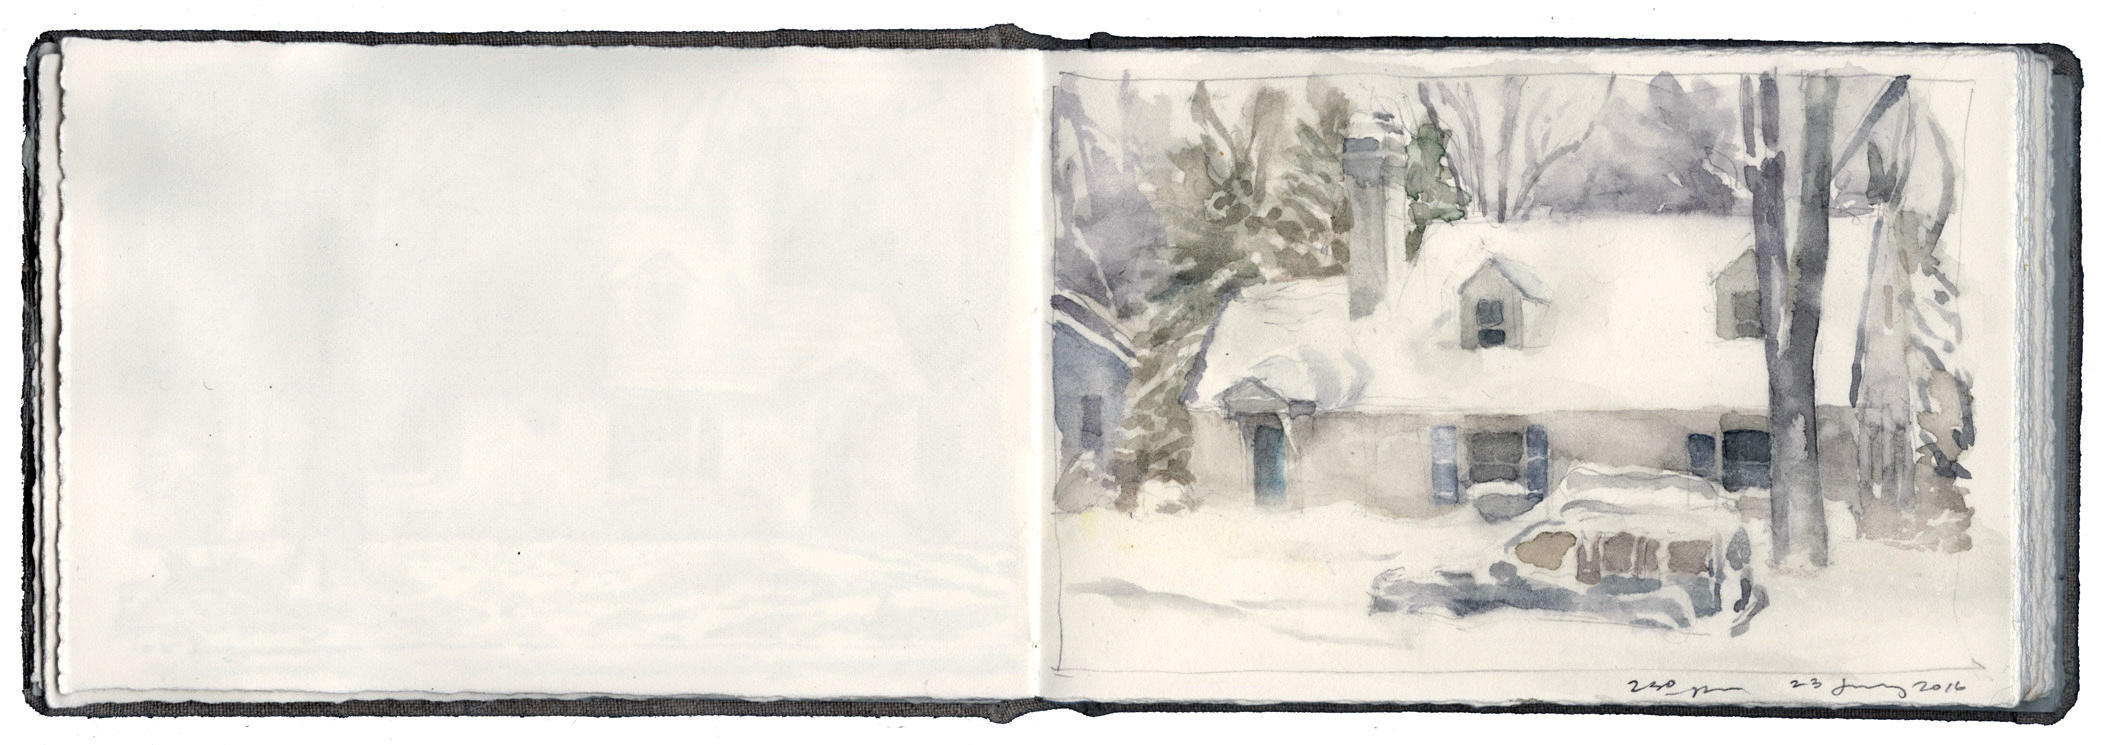 Study of Blowing Snow image